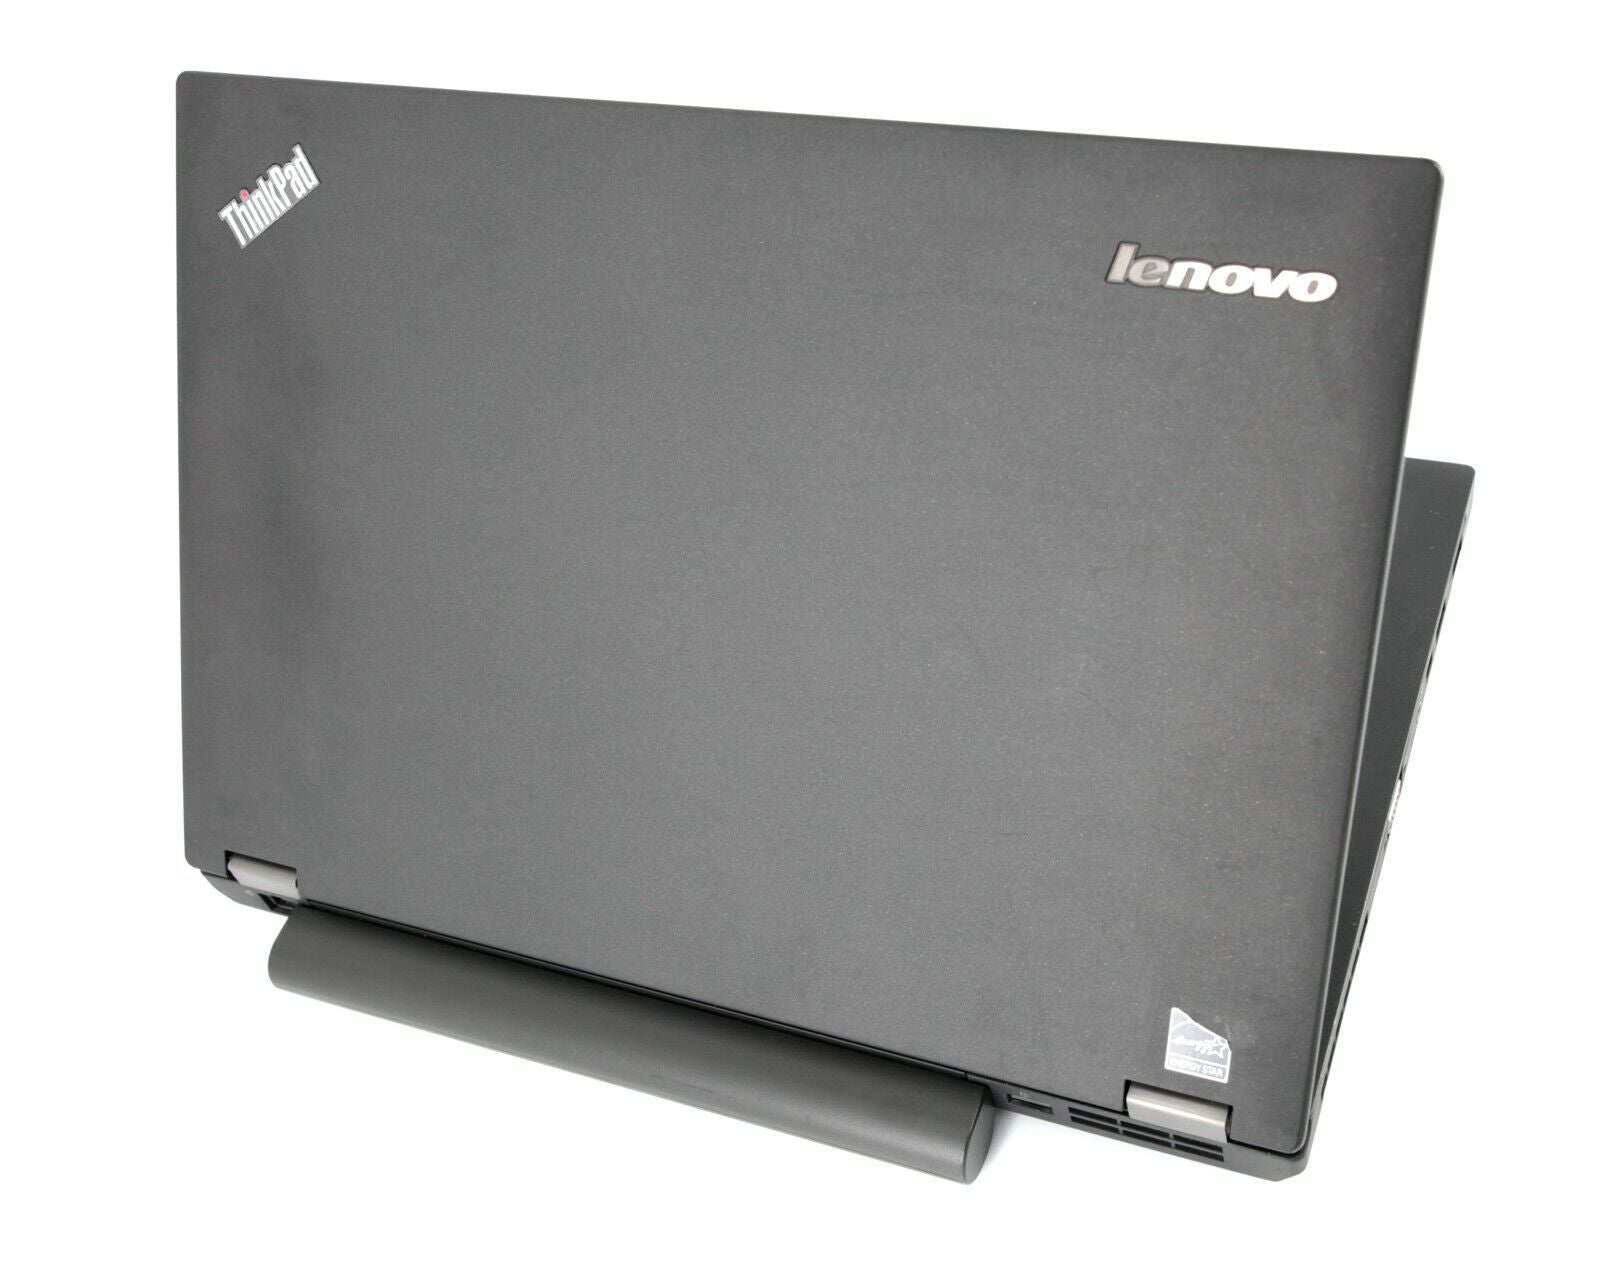 Lenovo ThinkPad T440P Laptop: Core i7-4600M, 8GB RAM, 240GB, NVIDIA 730M, VAT - CruiseTech